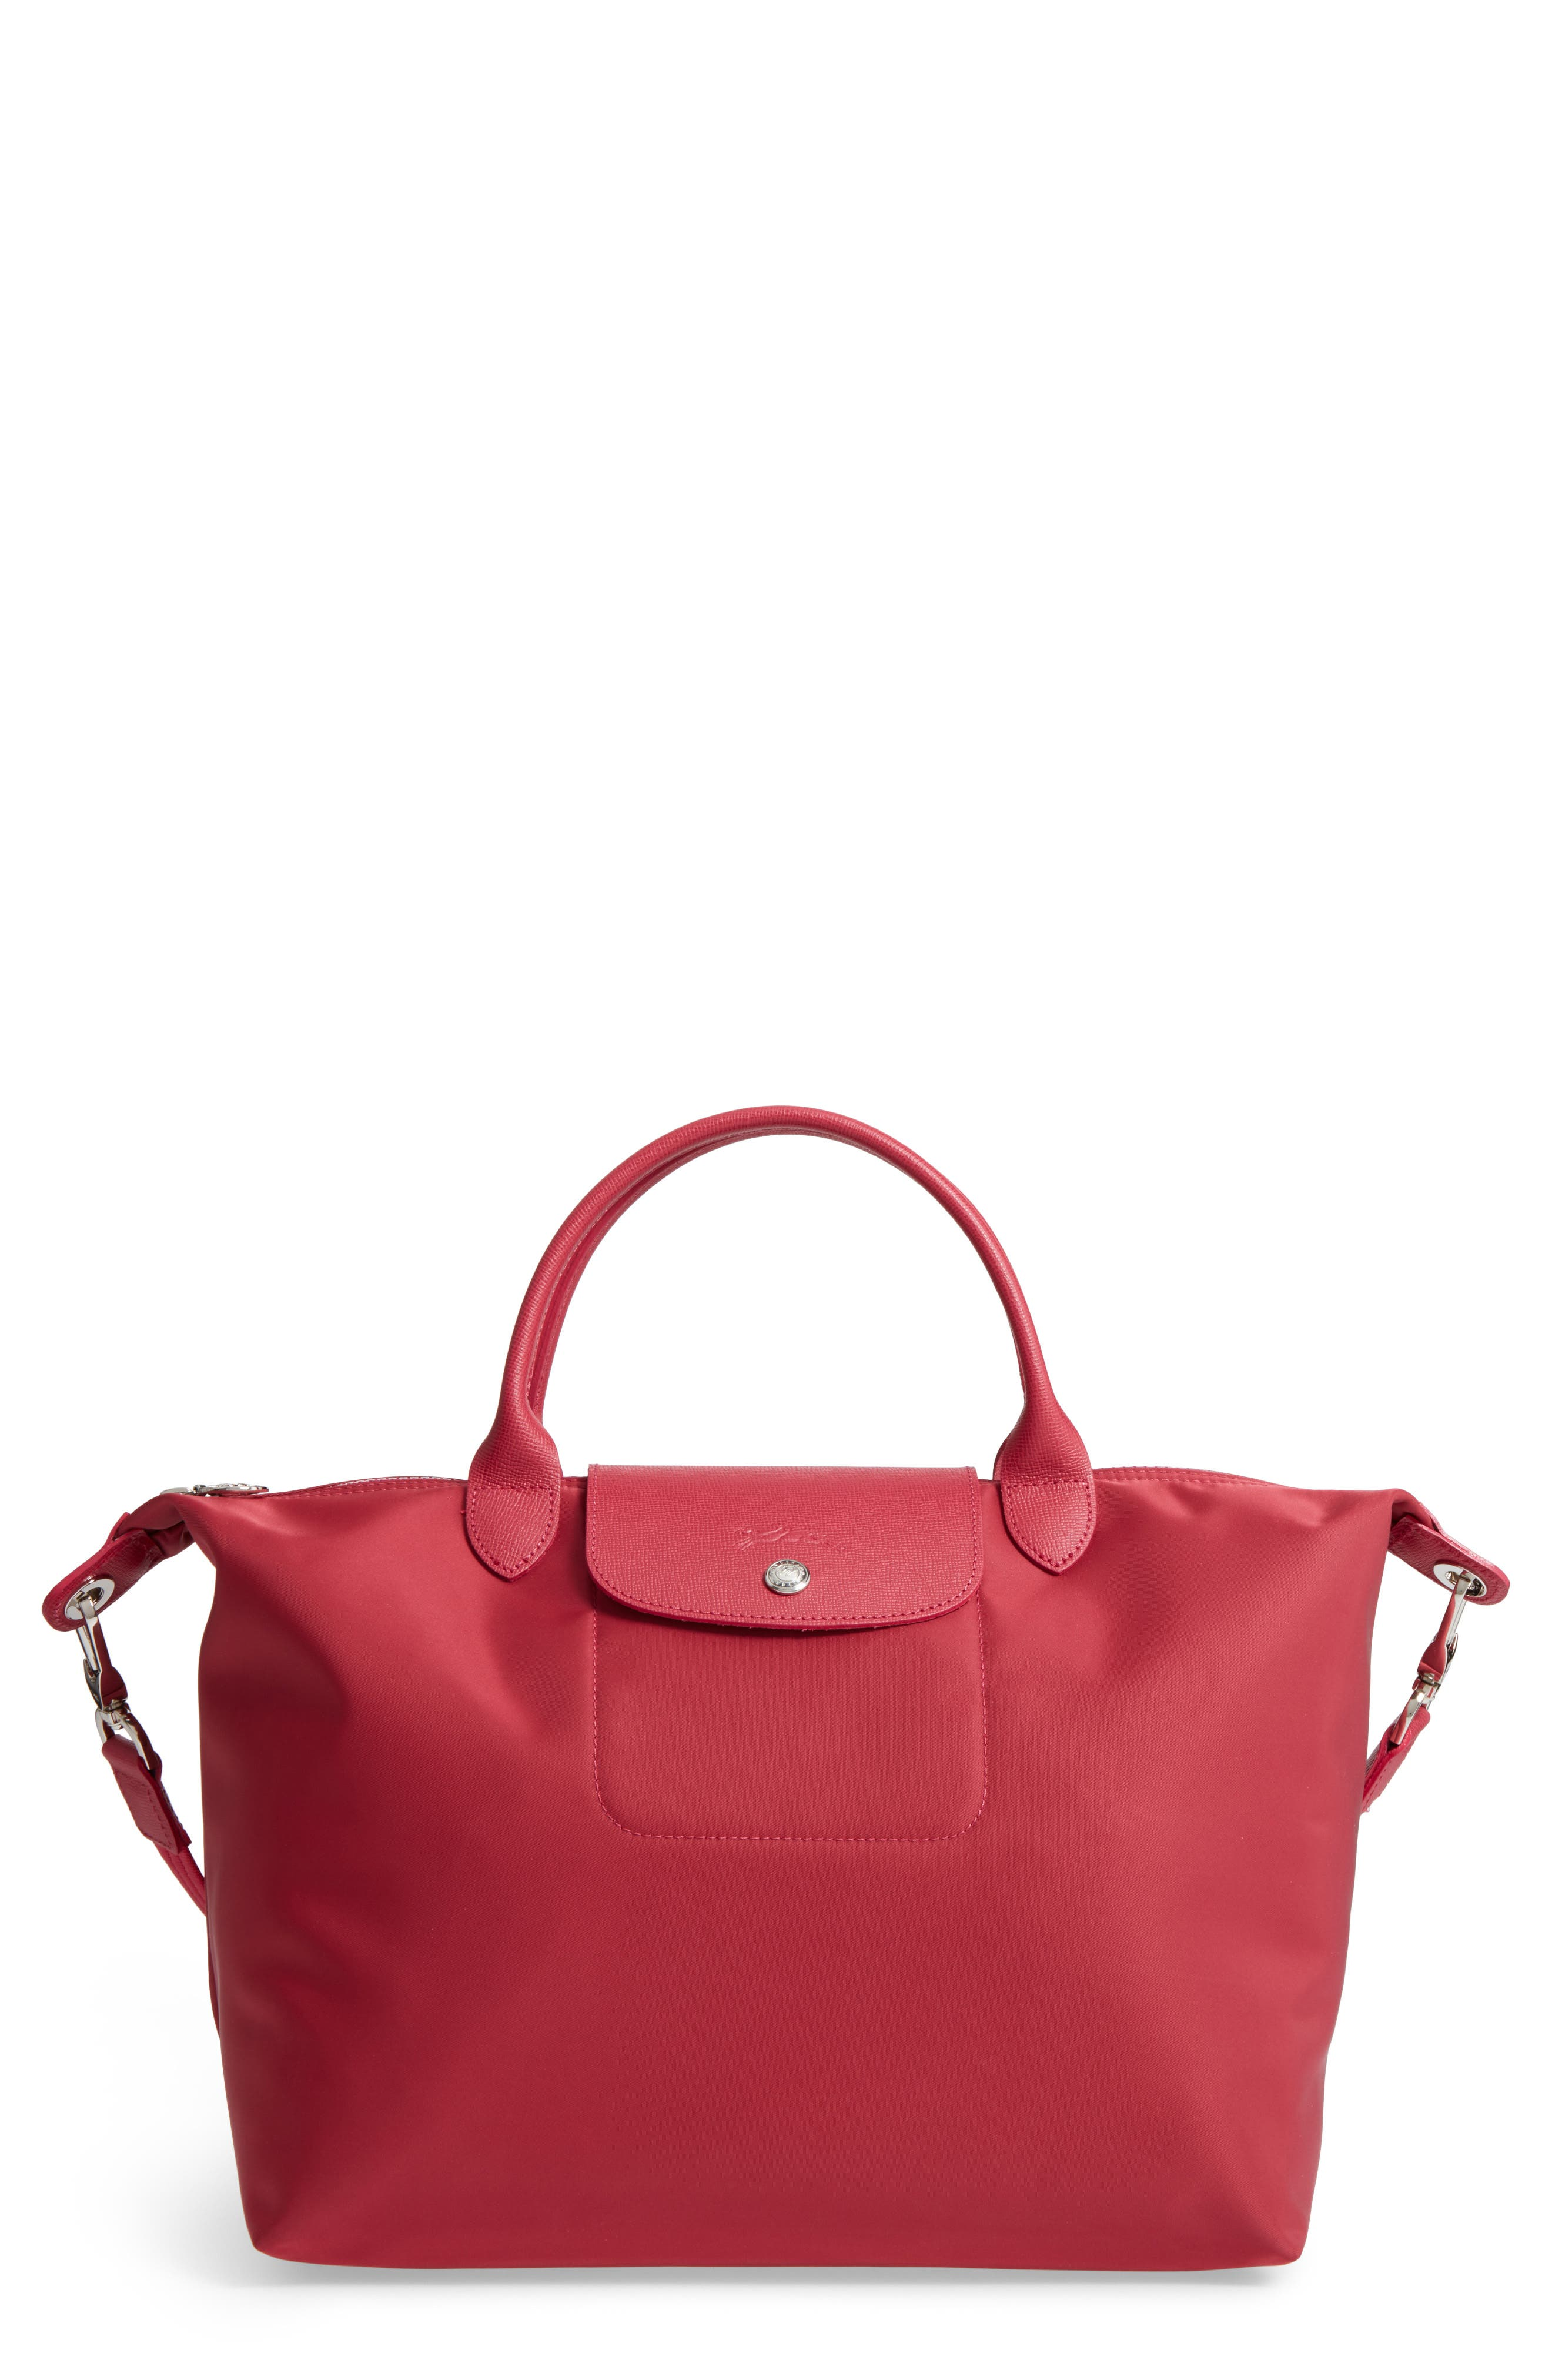 LONGCHAMP Medium Le Pliage Neo Nylon Tote